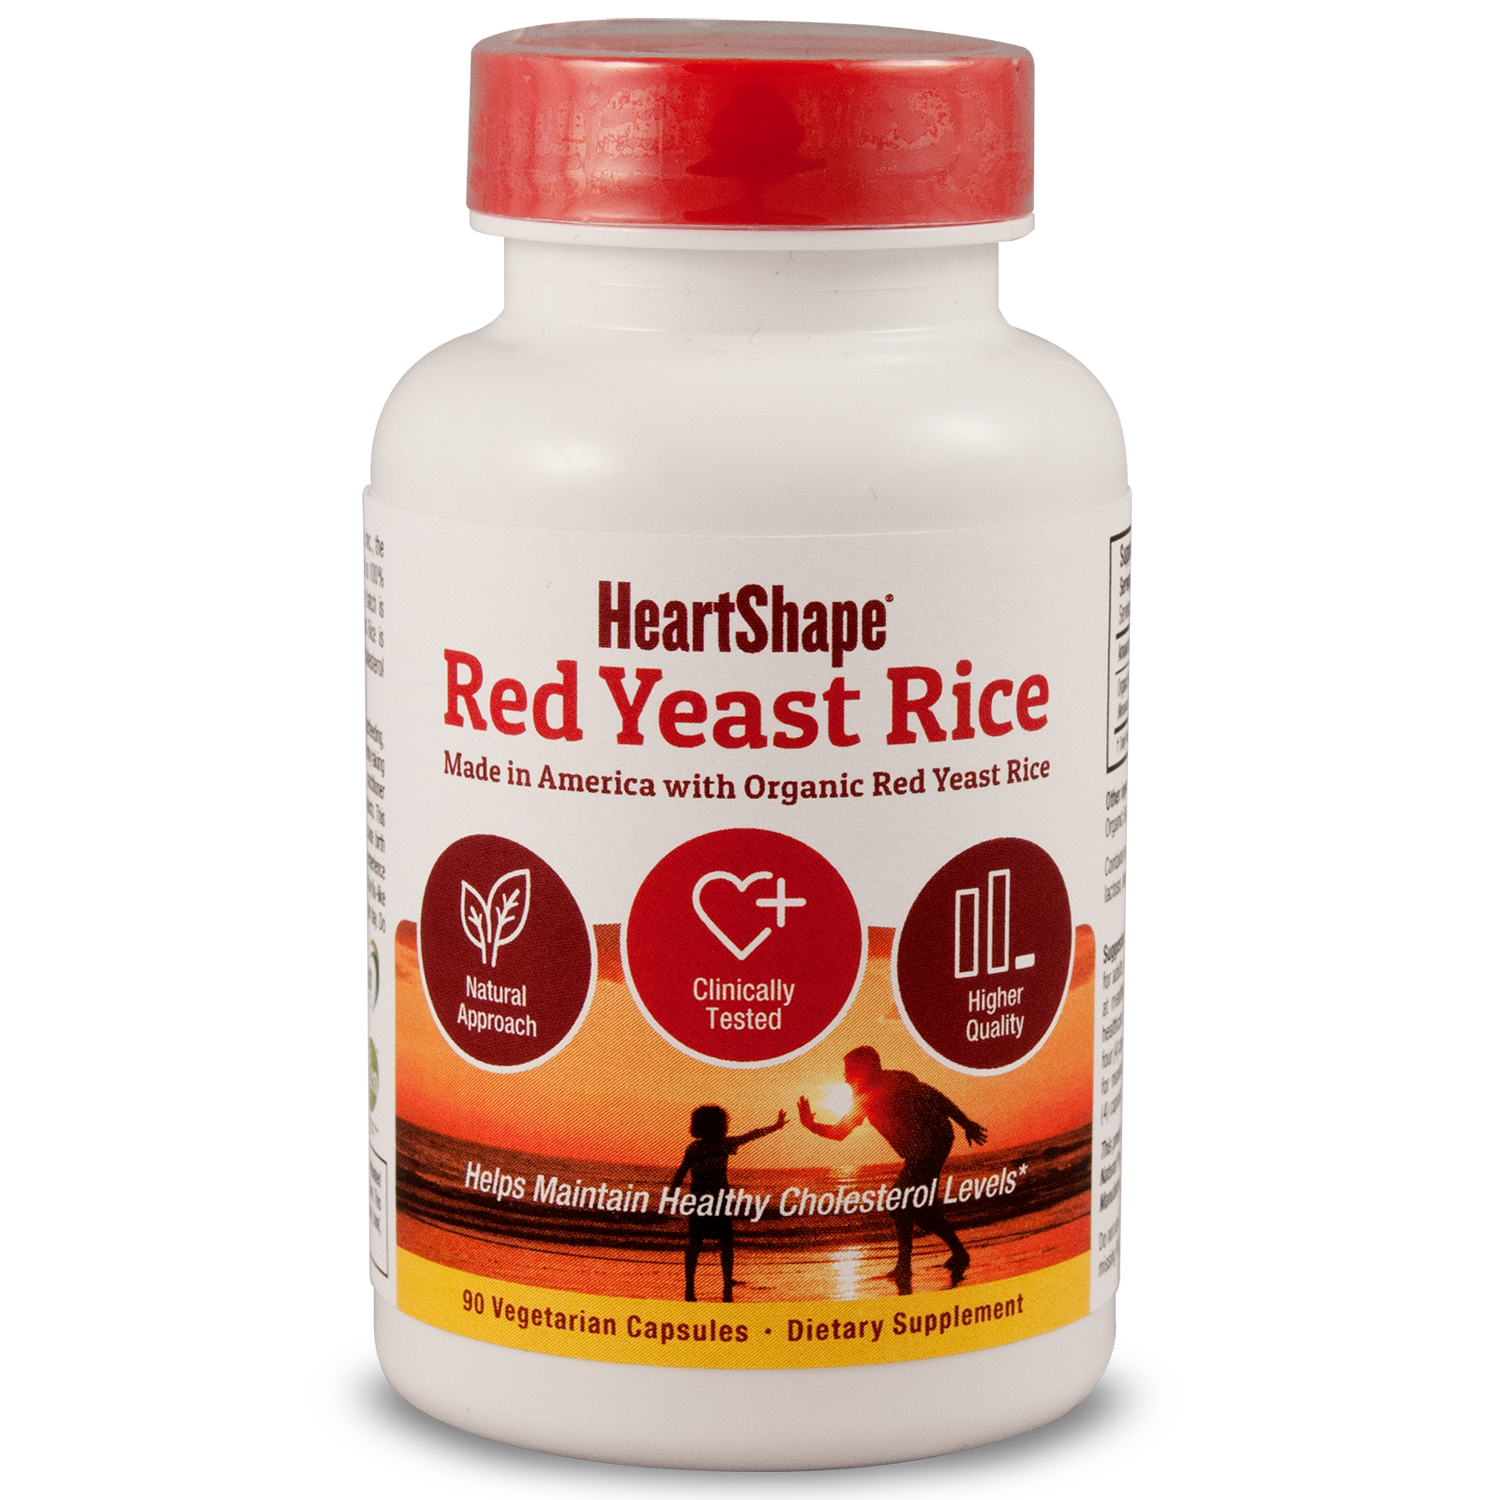 Sylvan HeartShape Red Yeast Rice 1200mg Capsules, 90 Ct